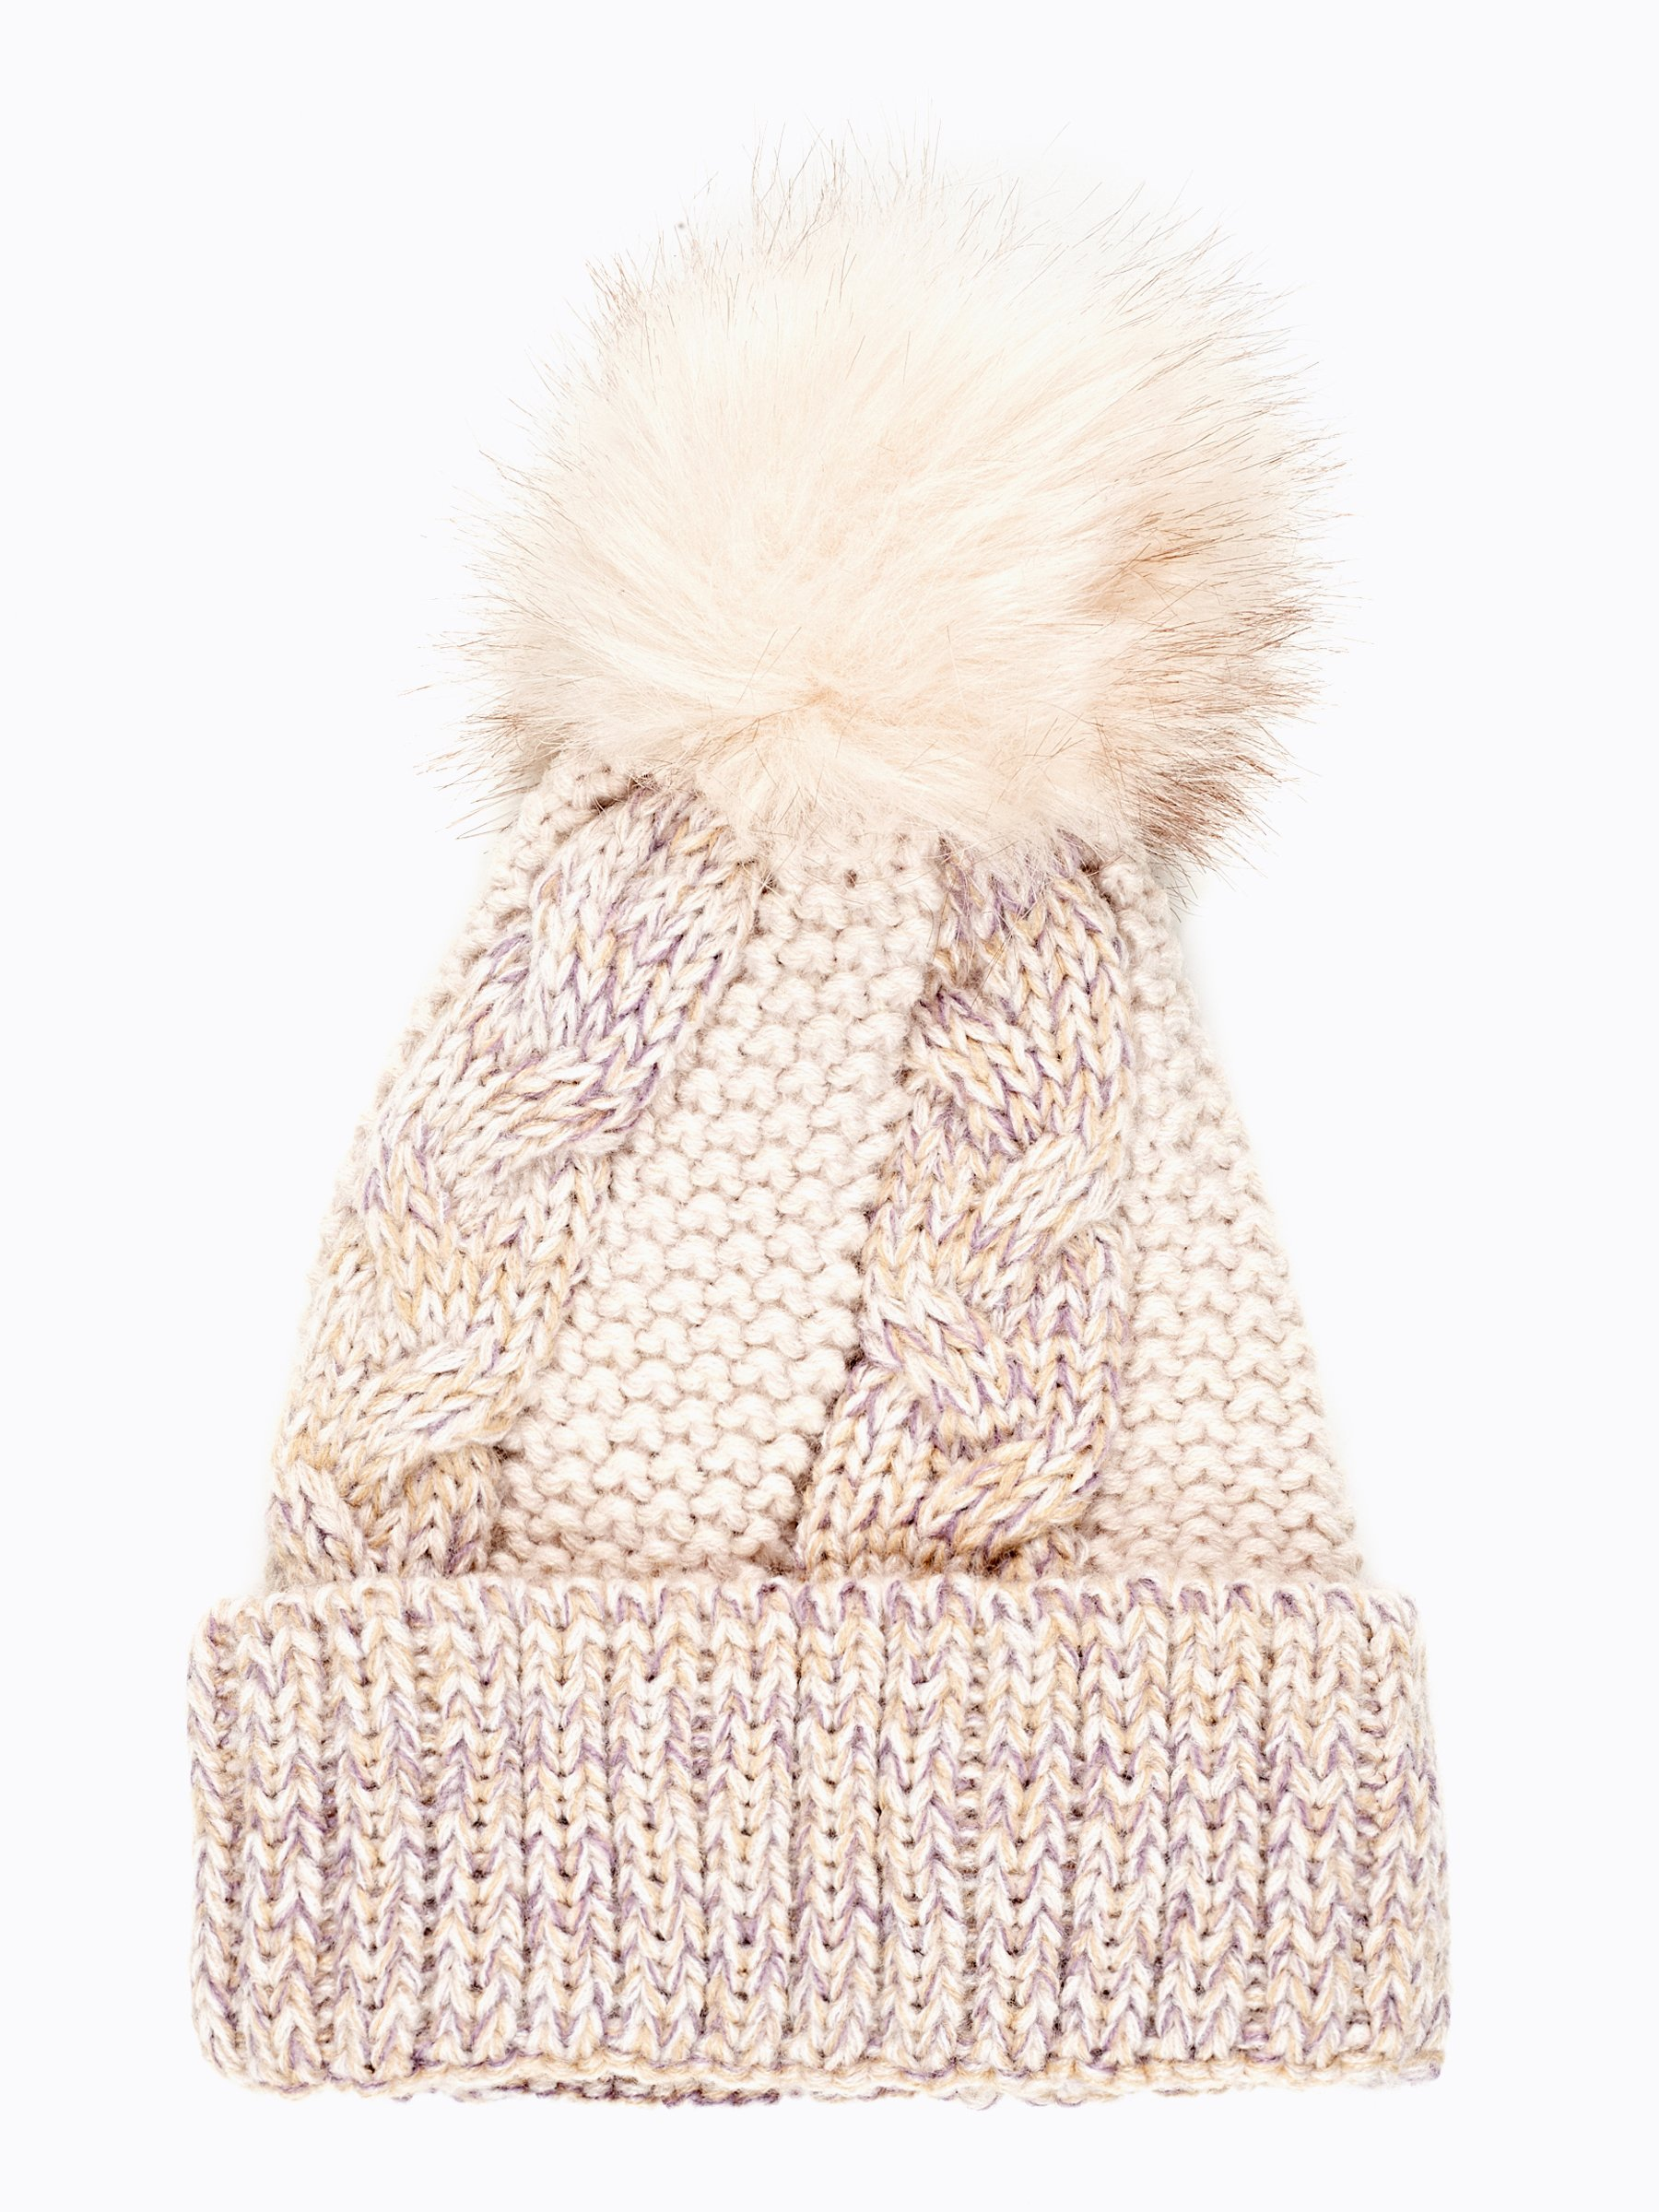 CABLE-KNIT BEANIE WITH FAUX FUR POM  fca43c16f2b